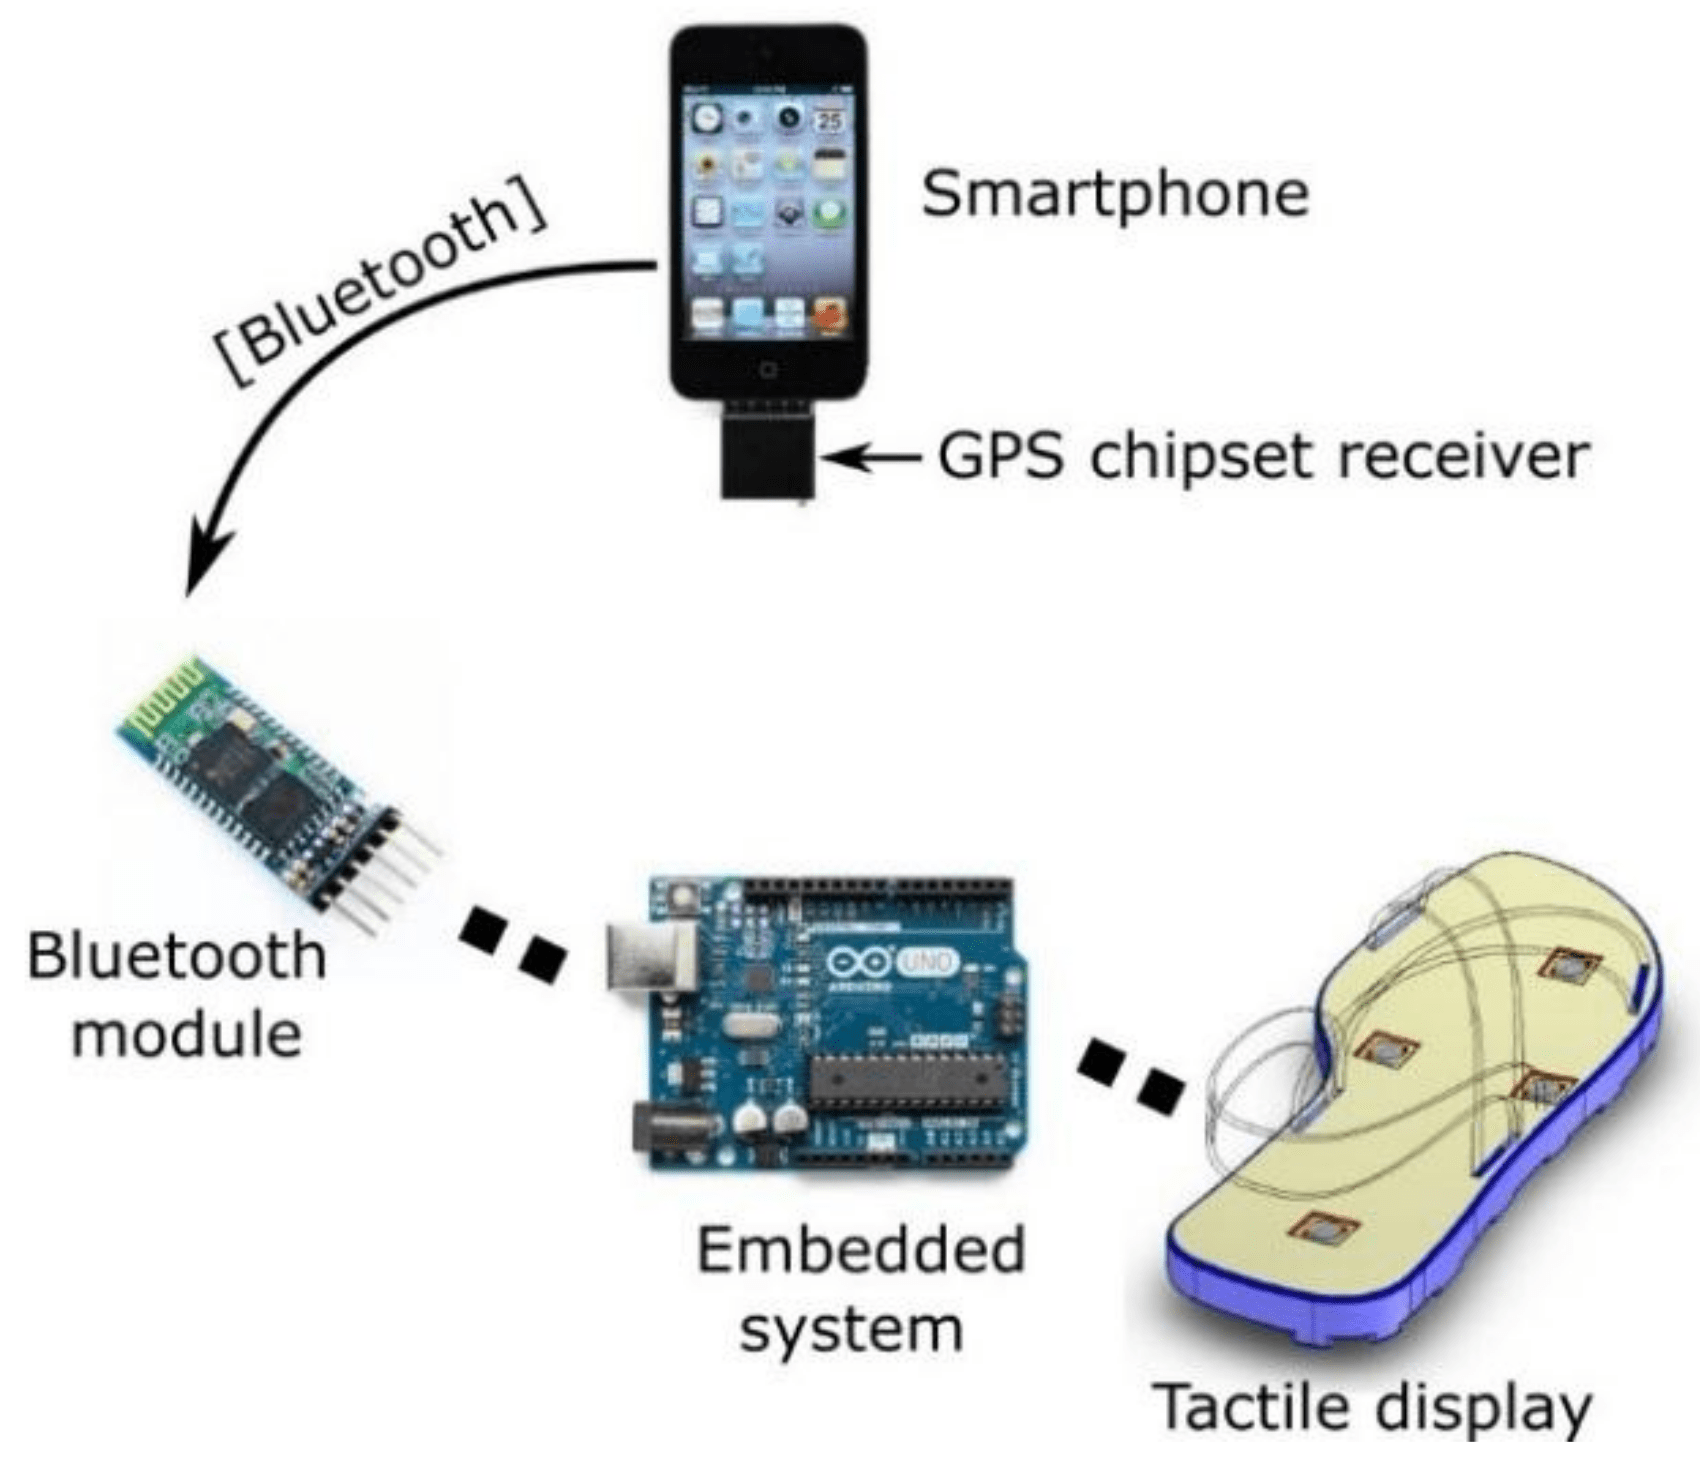 Guiding System for Blind Person based on GPS